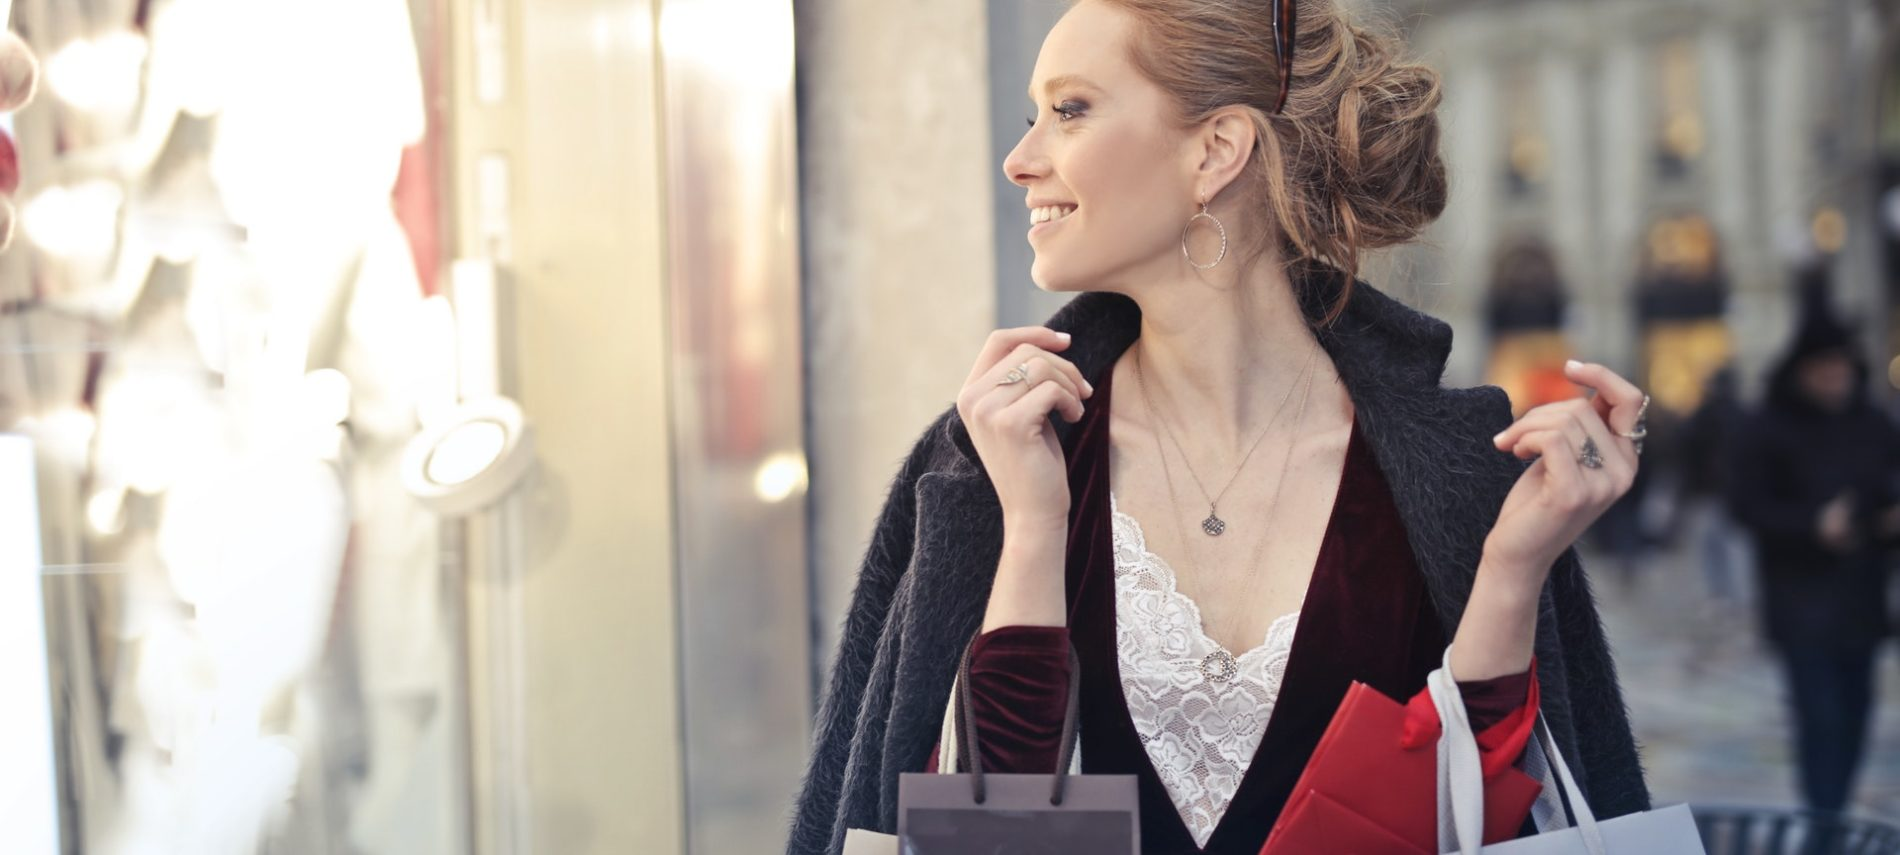 lady in white dress with black coat out side looking in window of storefront carrying bags